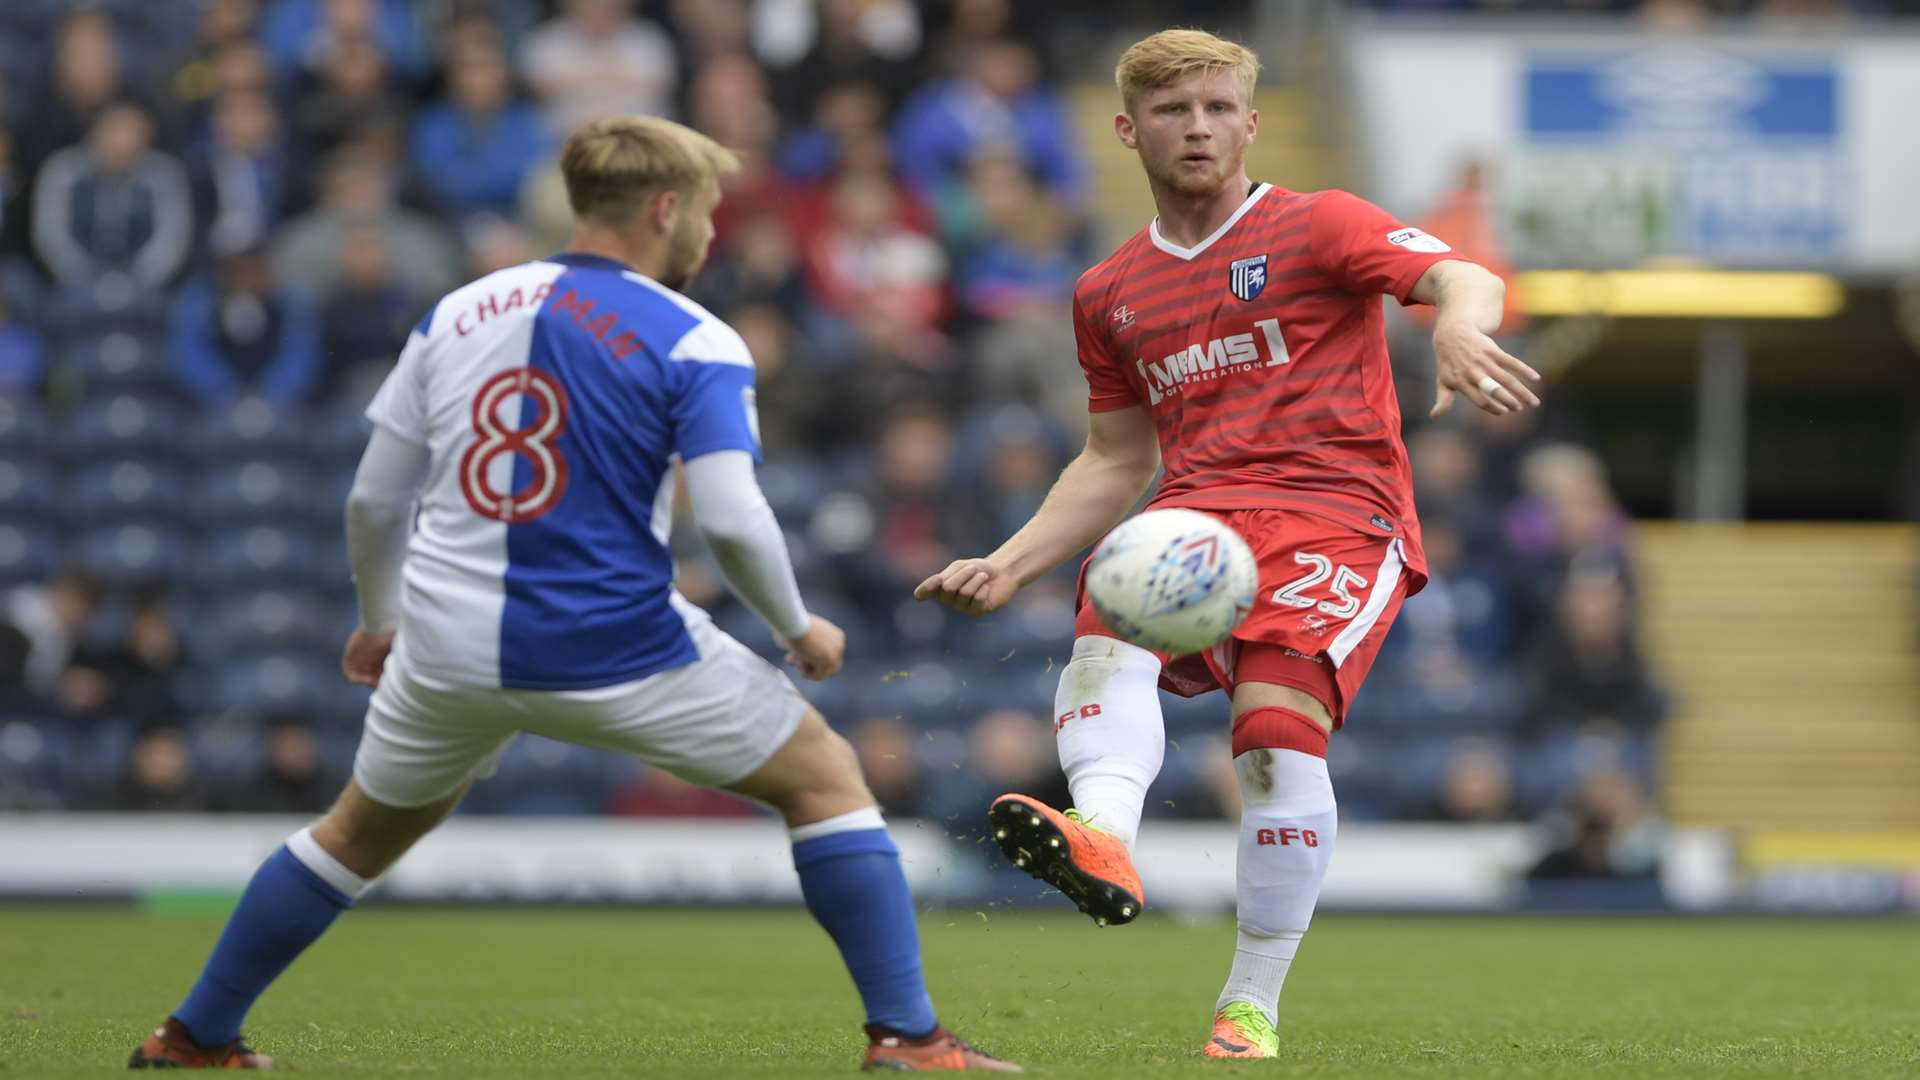 Finn O'Mara swapped Cheriton Road for Ewood Park on Saturday Picture: Barry Goodwin